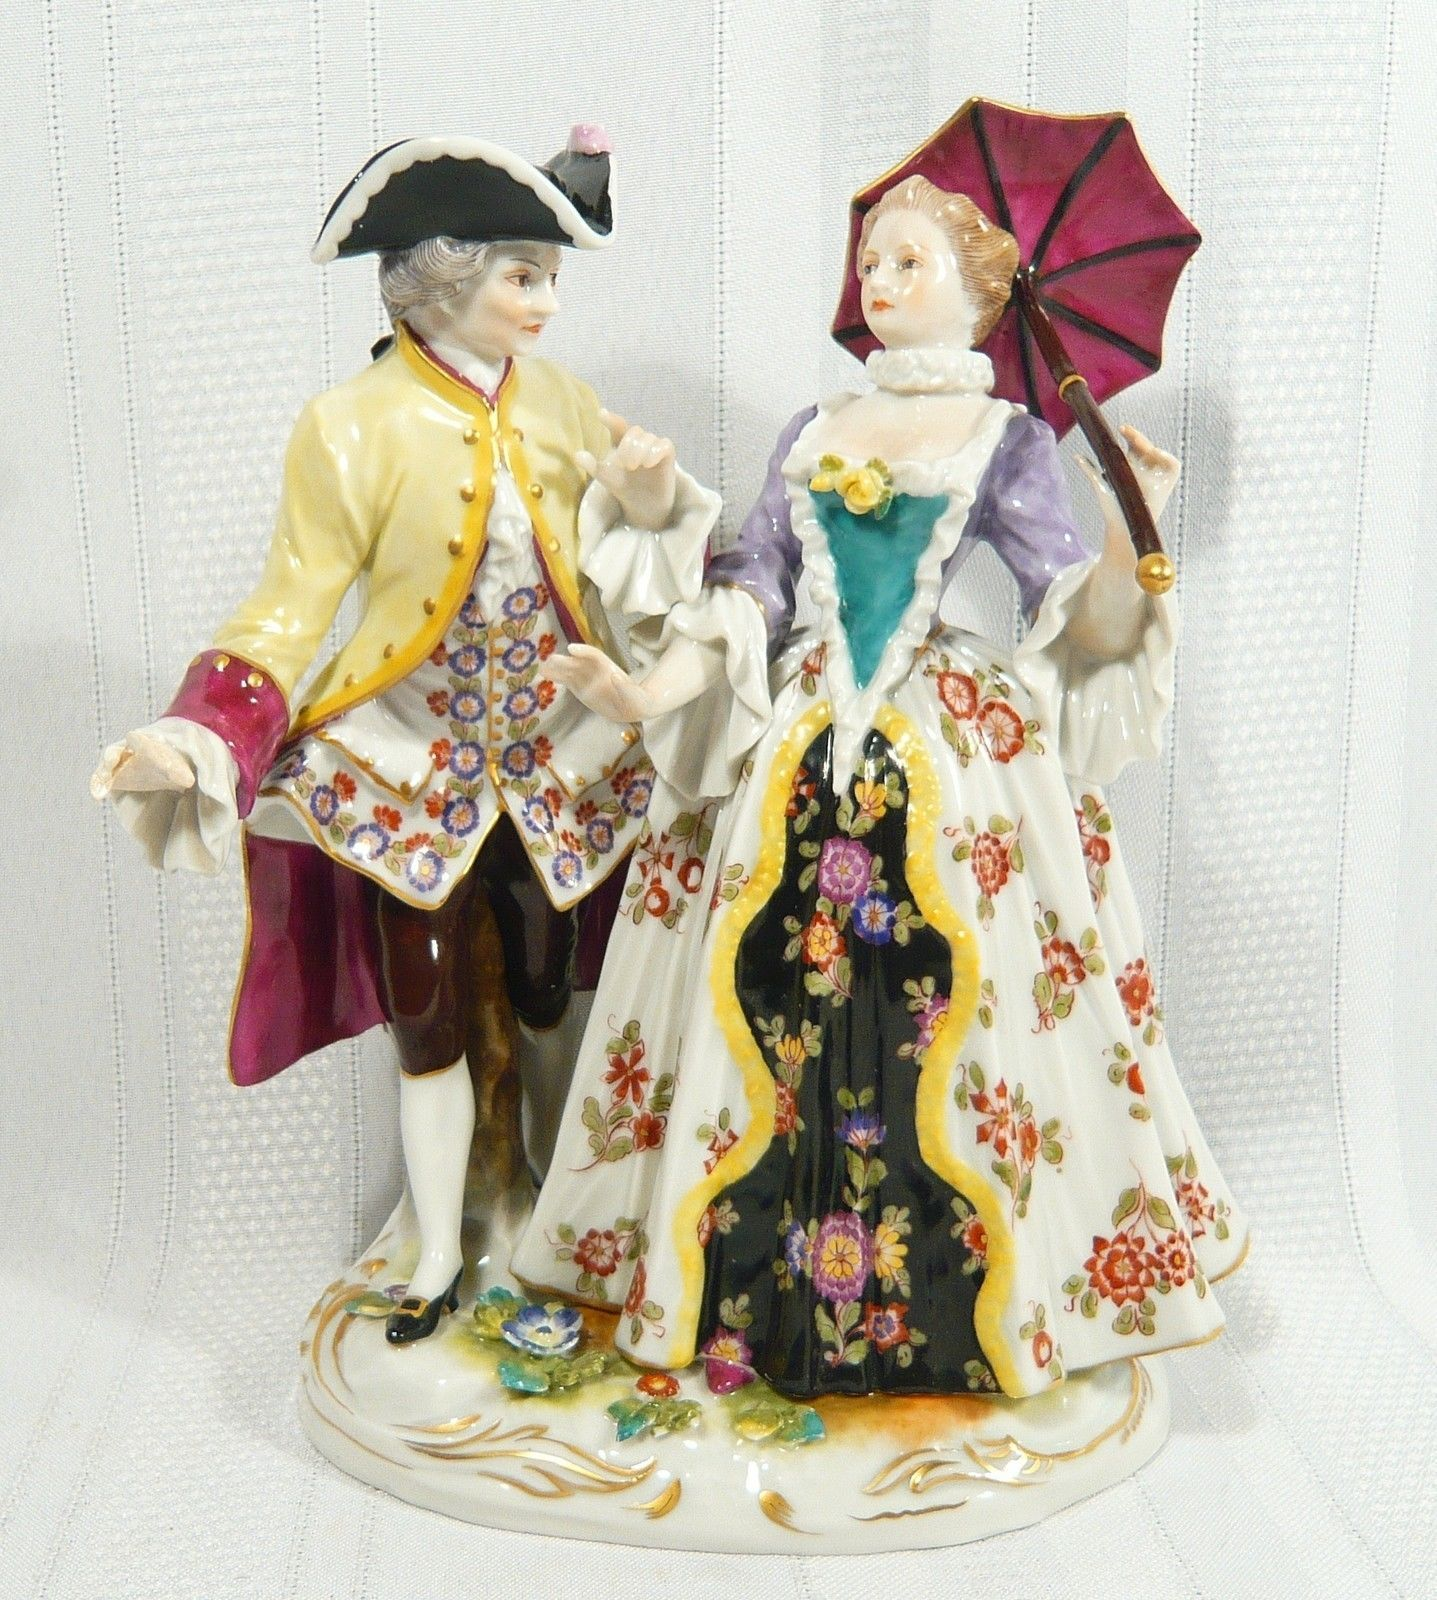 Antique Figurine Rudolstadt Volkstedt Group Lady Gentlemen German Porcelain | eBay  $99